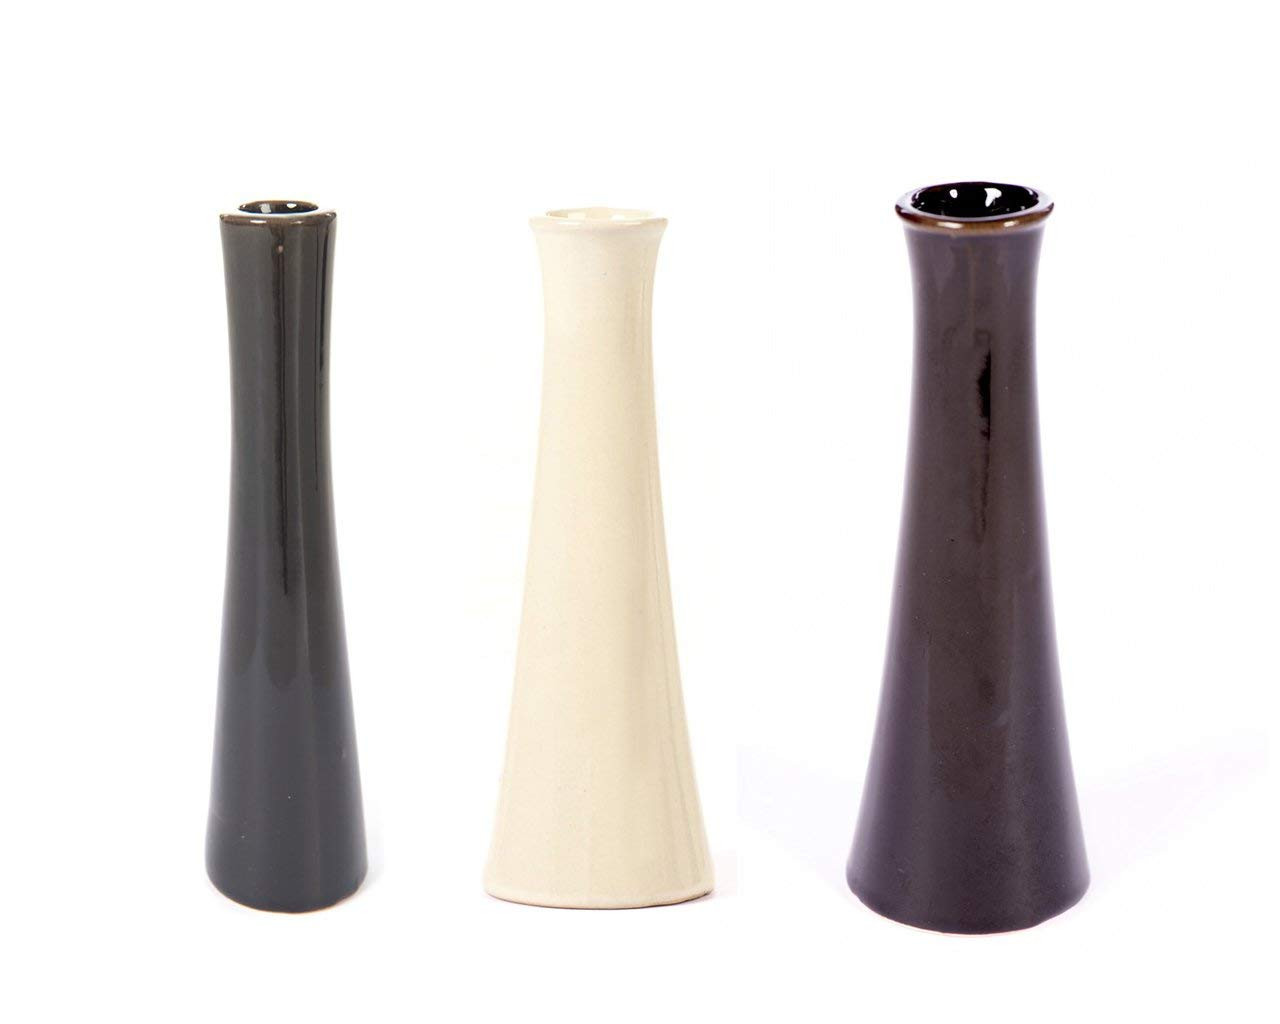 ceramic umbrella stand vase of 20cm porcelain vase for artificial flowers in cream black or brown throughout 20cm porcelain vase for artificial flowers in cream black or brown cream amazon co uk kitchen home